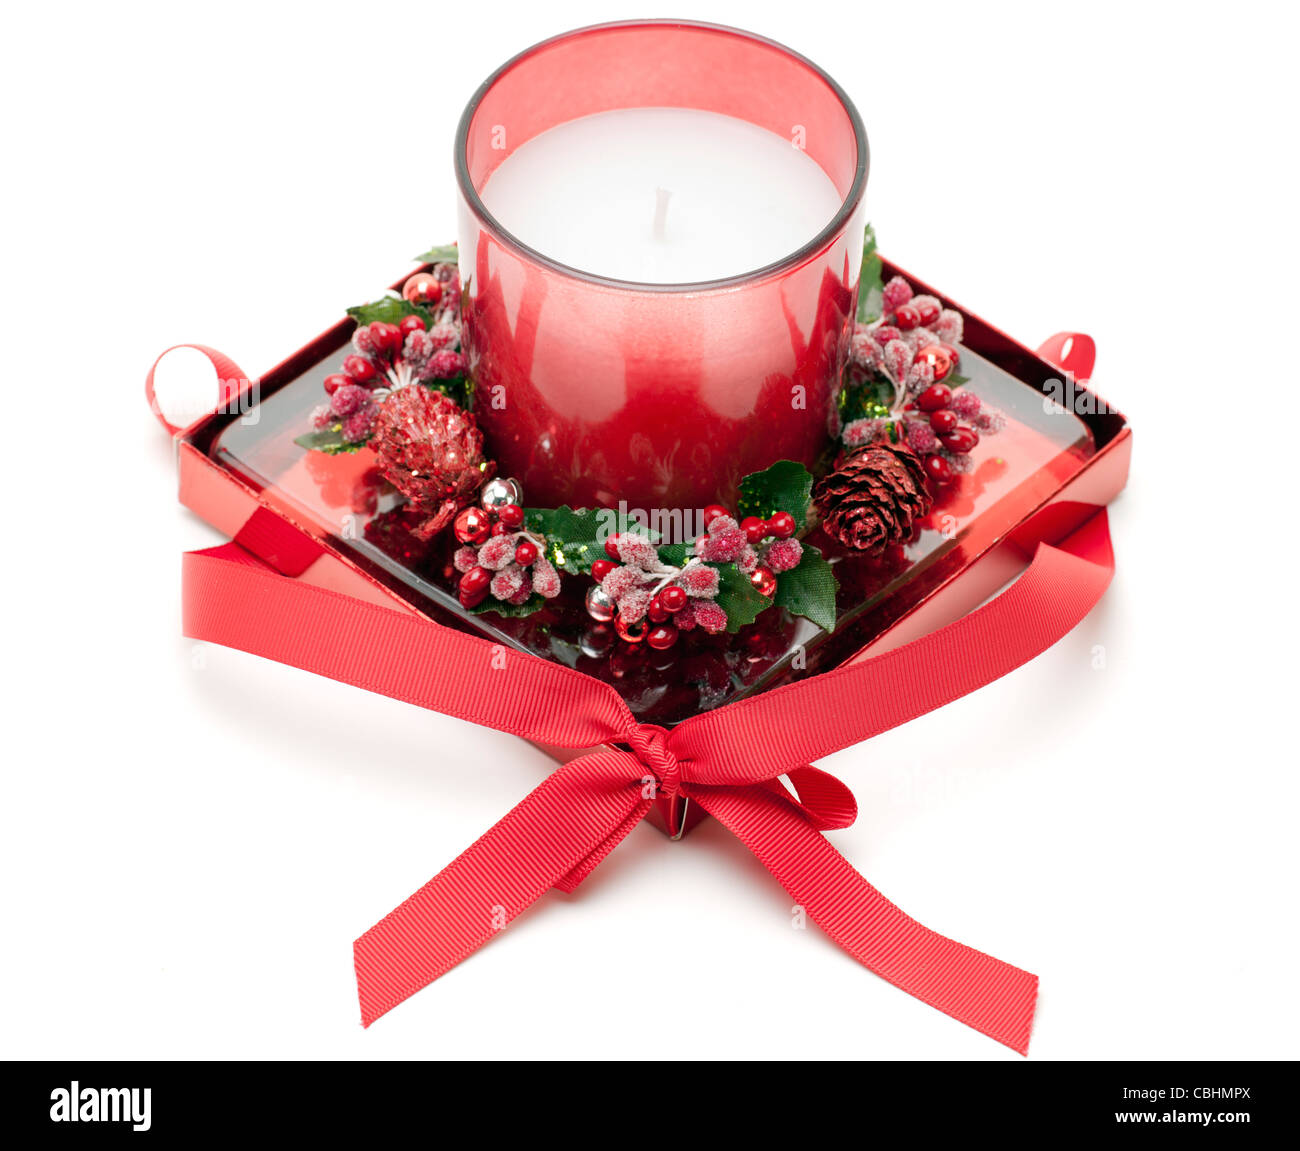 Decorative Christmas wreath candle with a red bow - Stock Image